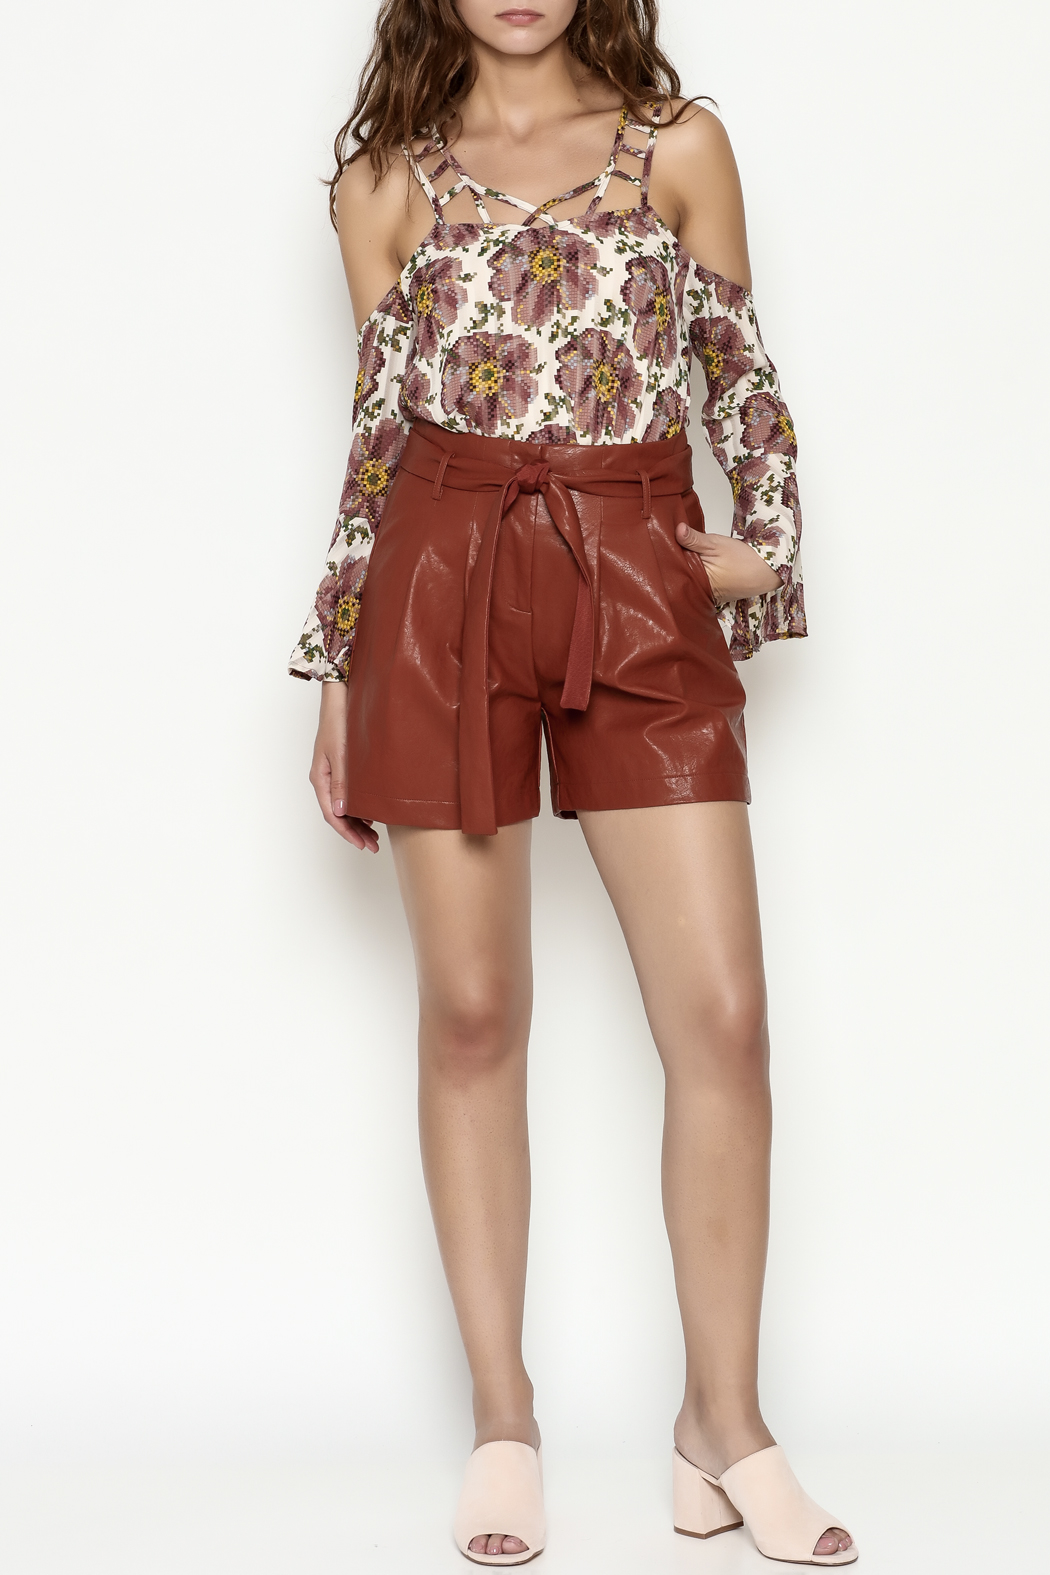 FRNCH Vegan Leather Shorts - Side Cropped Image